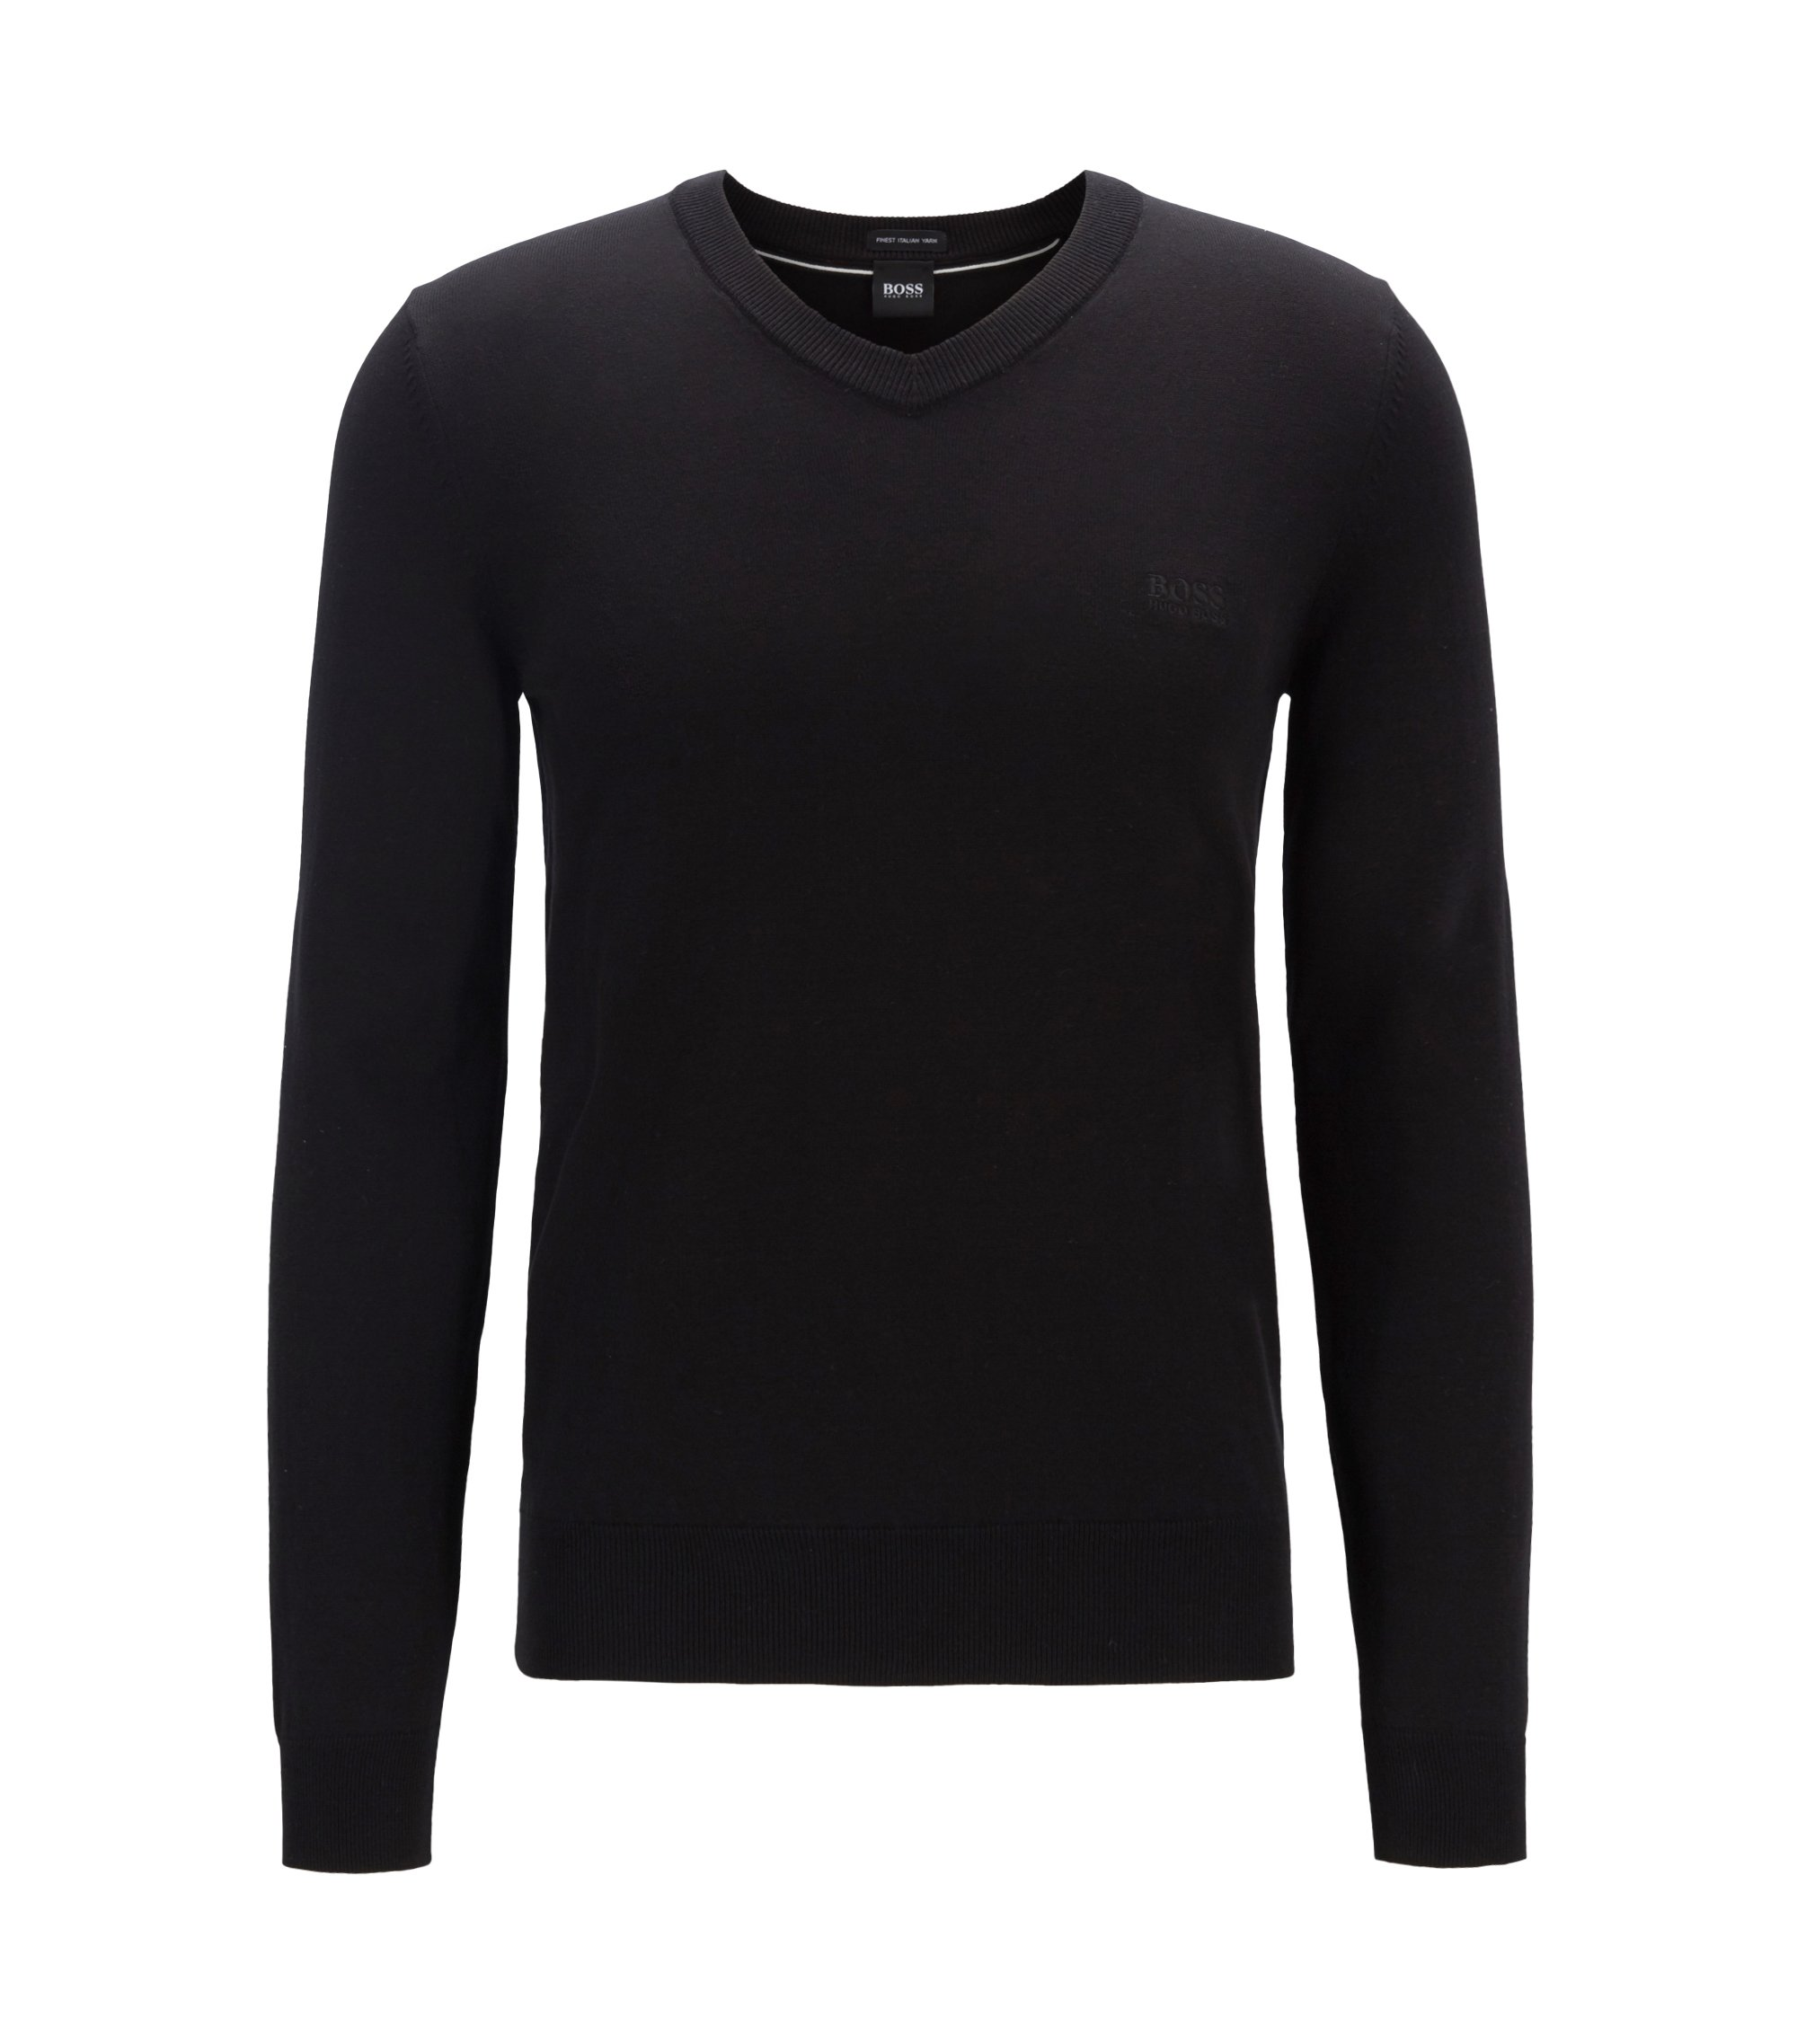 Cotton V-neck sweater with tonal embroidery, Black